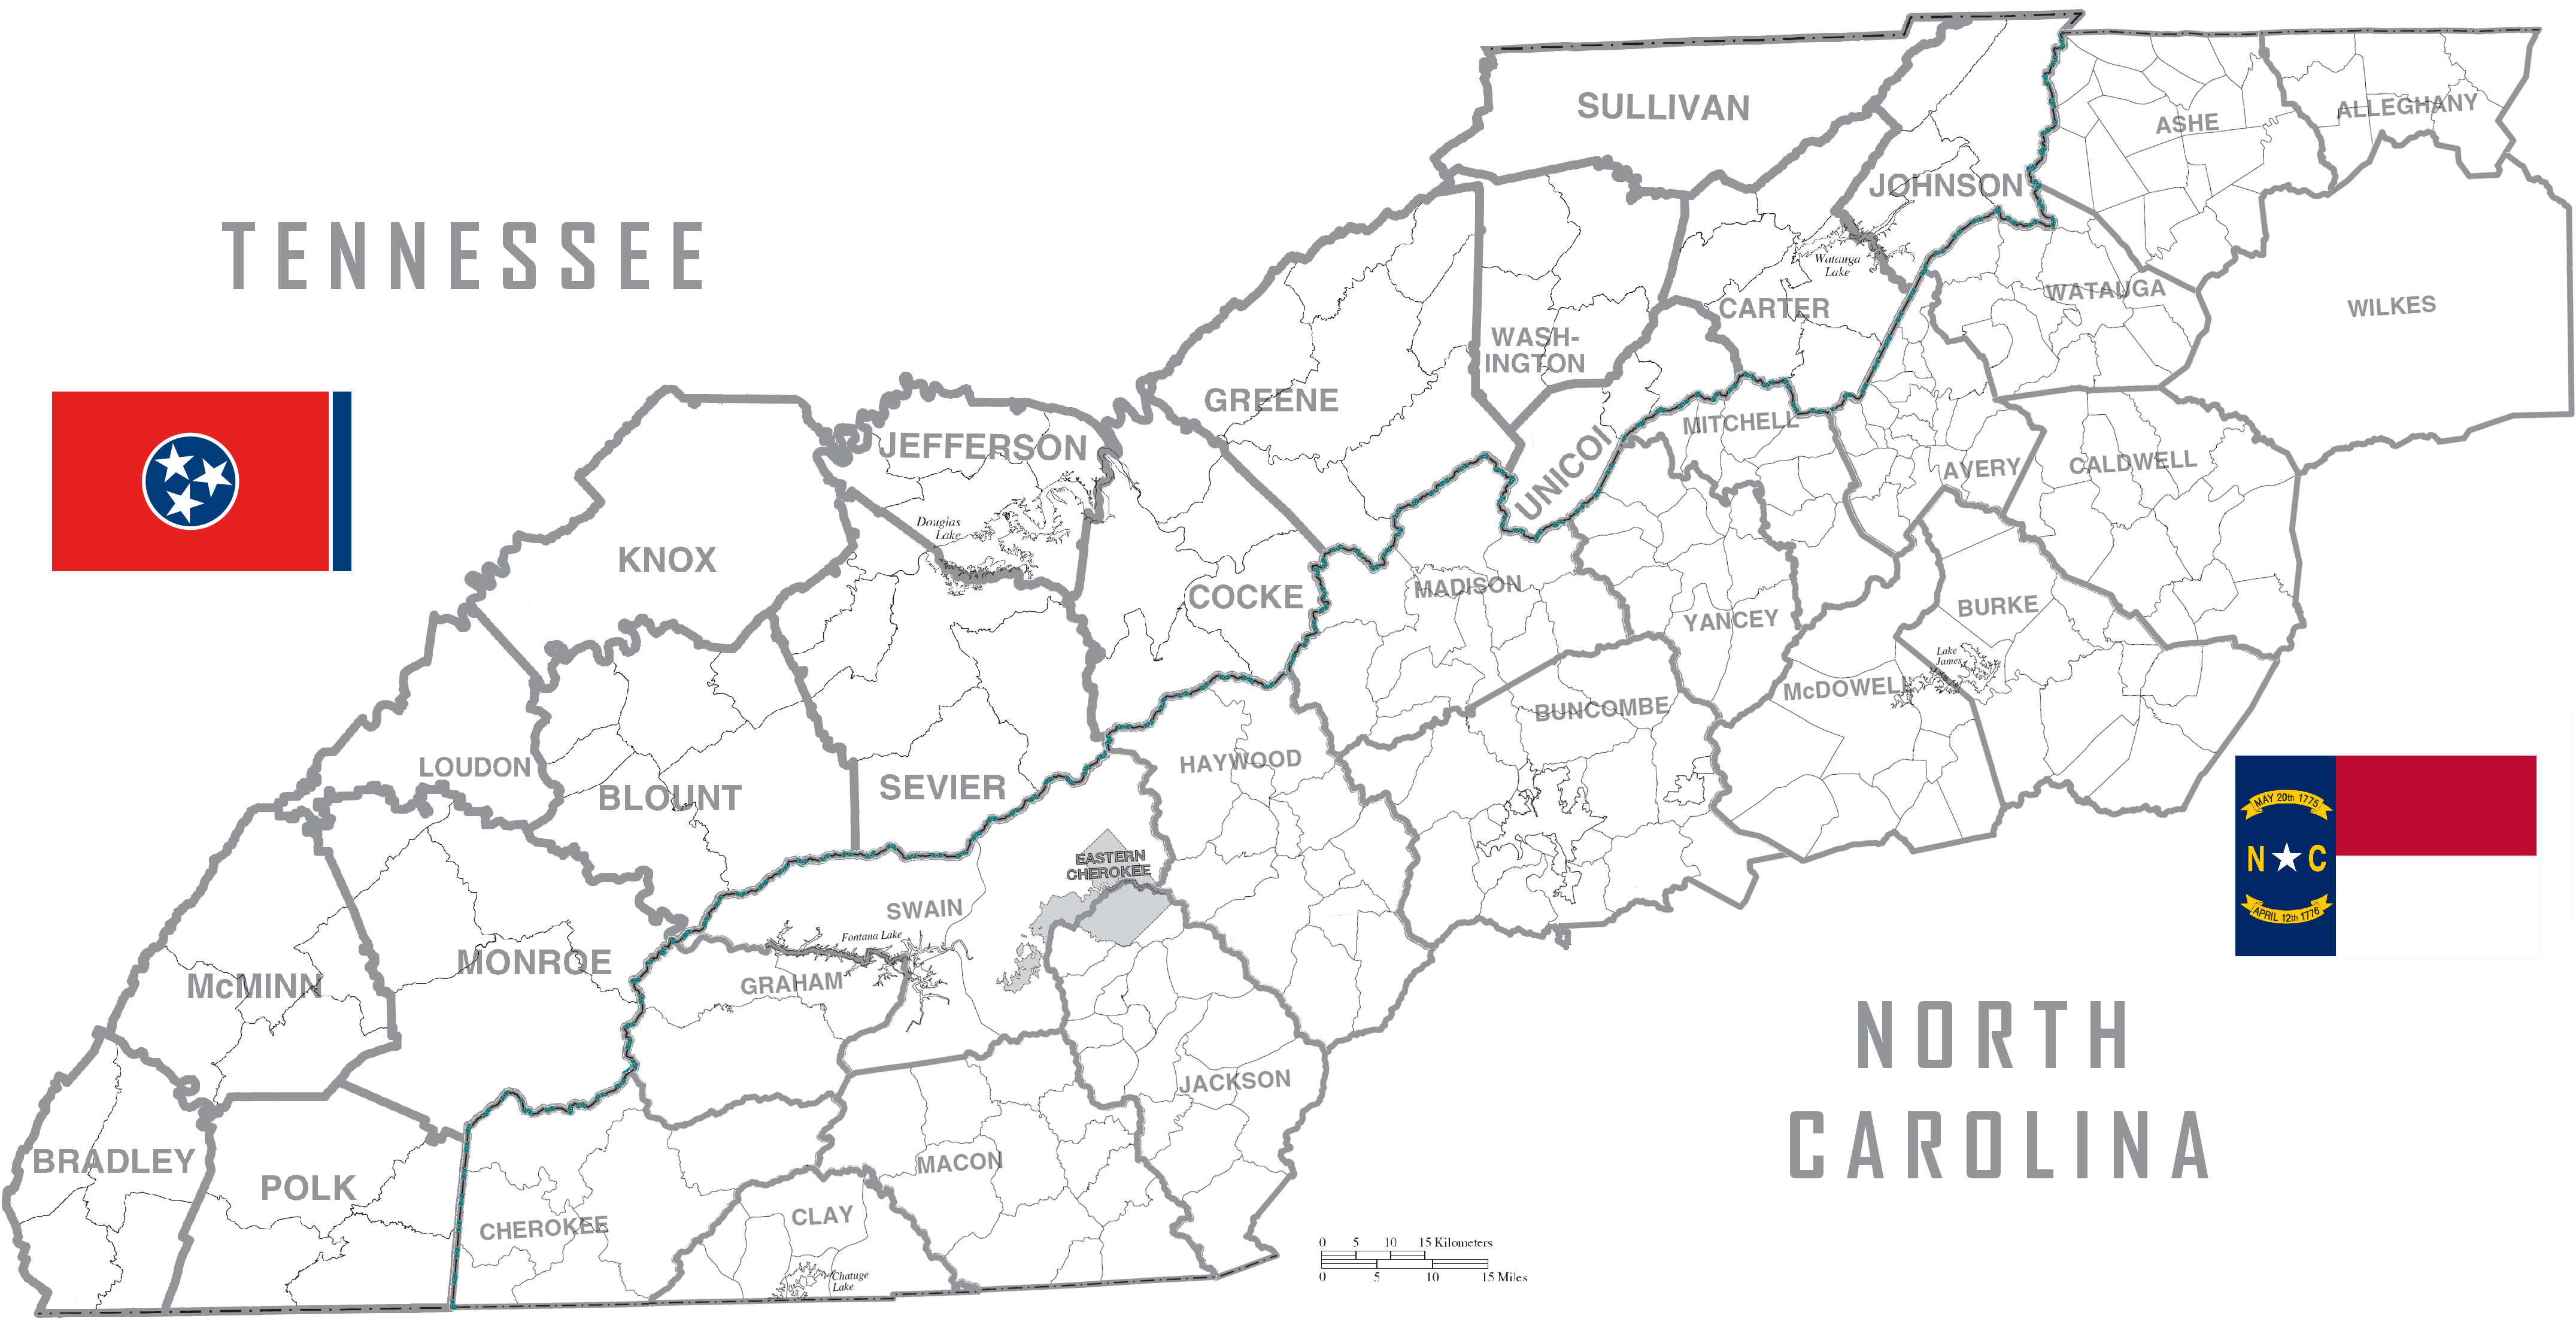 ga map with counties with File Tn Nc Border Counties on Georgia further Usa South West Region Country Editable Powerpoint Maps With States And Counties furthermore Georgia maps additionally Cherokee1999map together with Showthread.